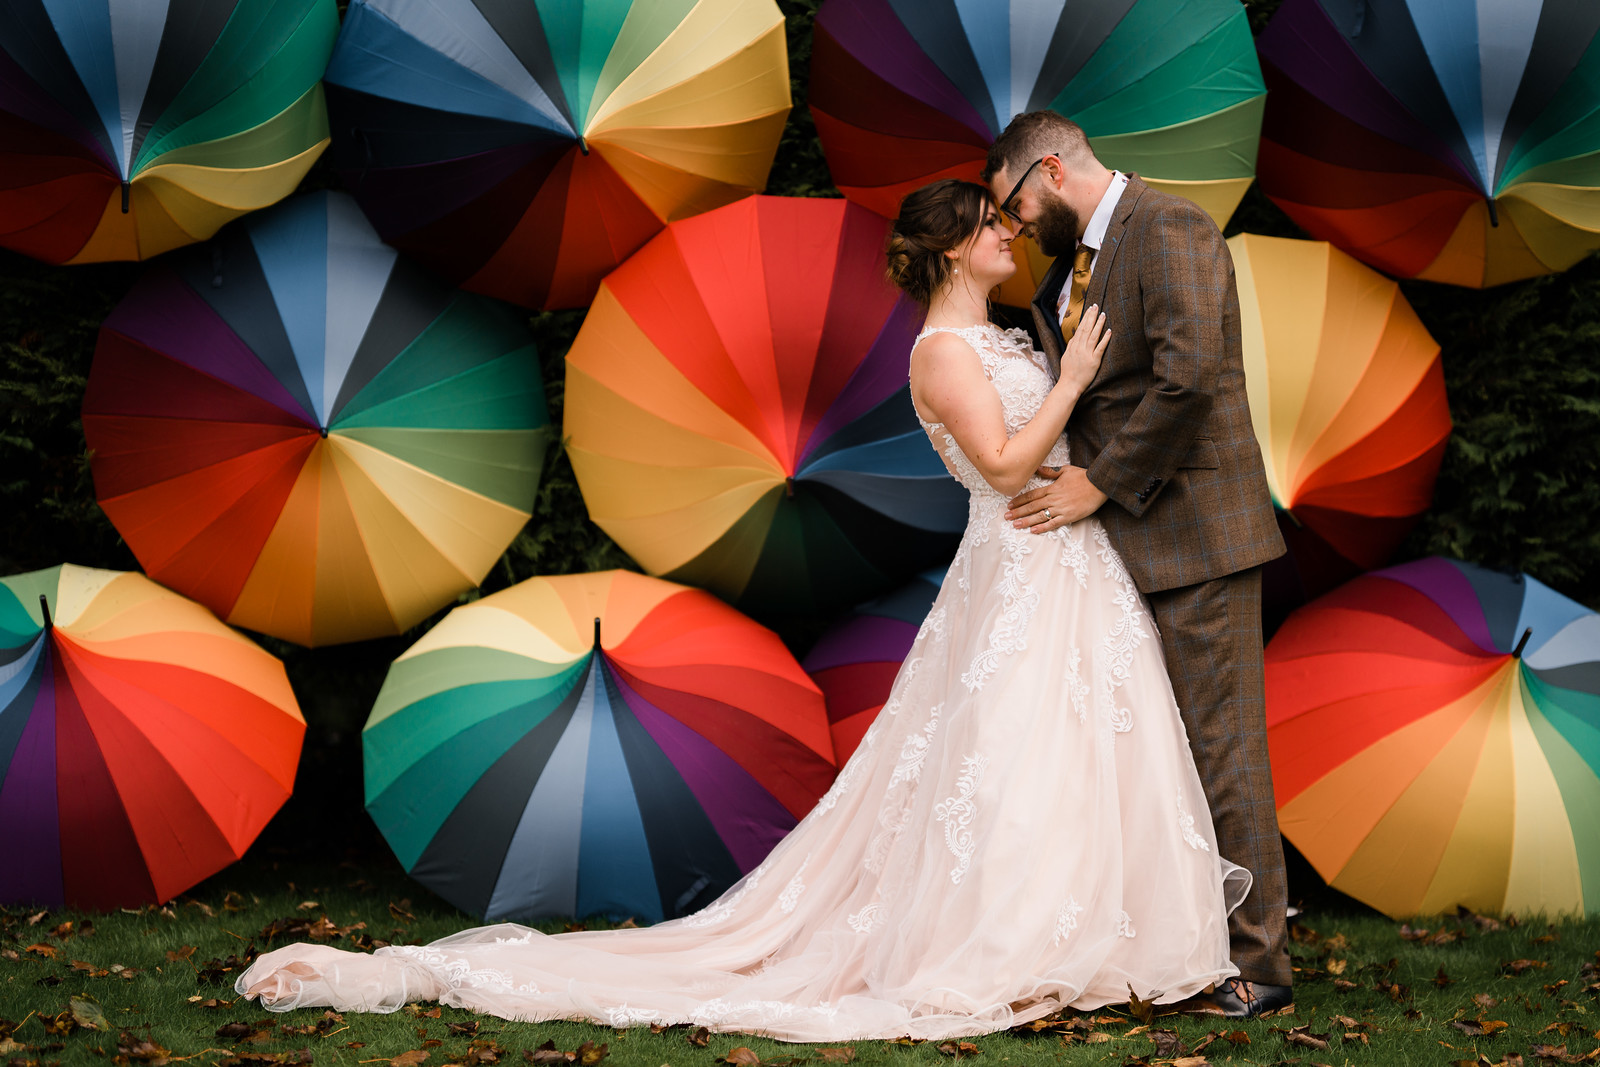 Bride and groom wedding photo with a colourful umbrella background